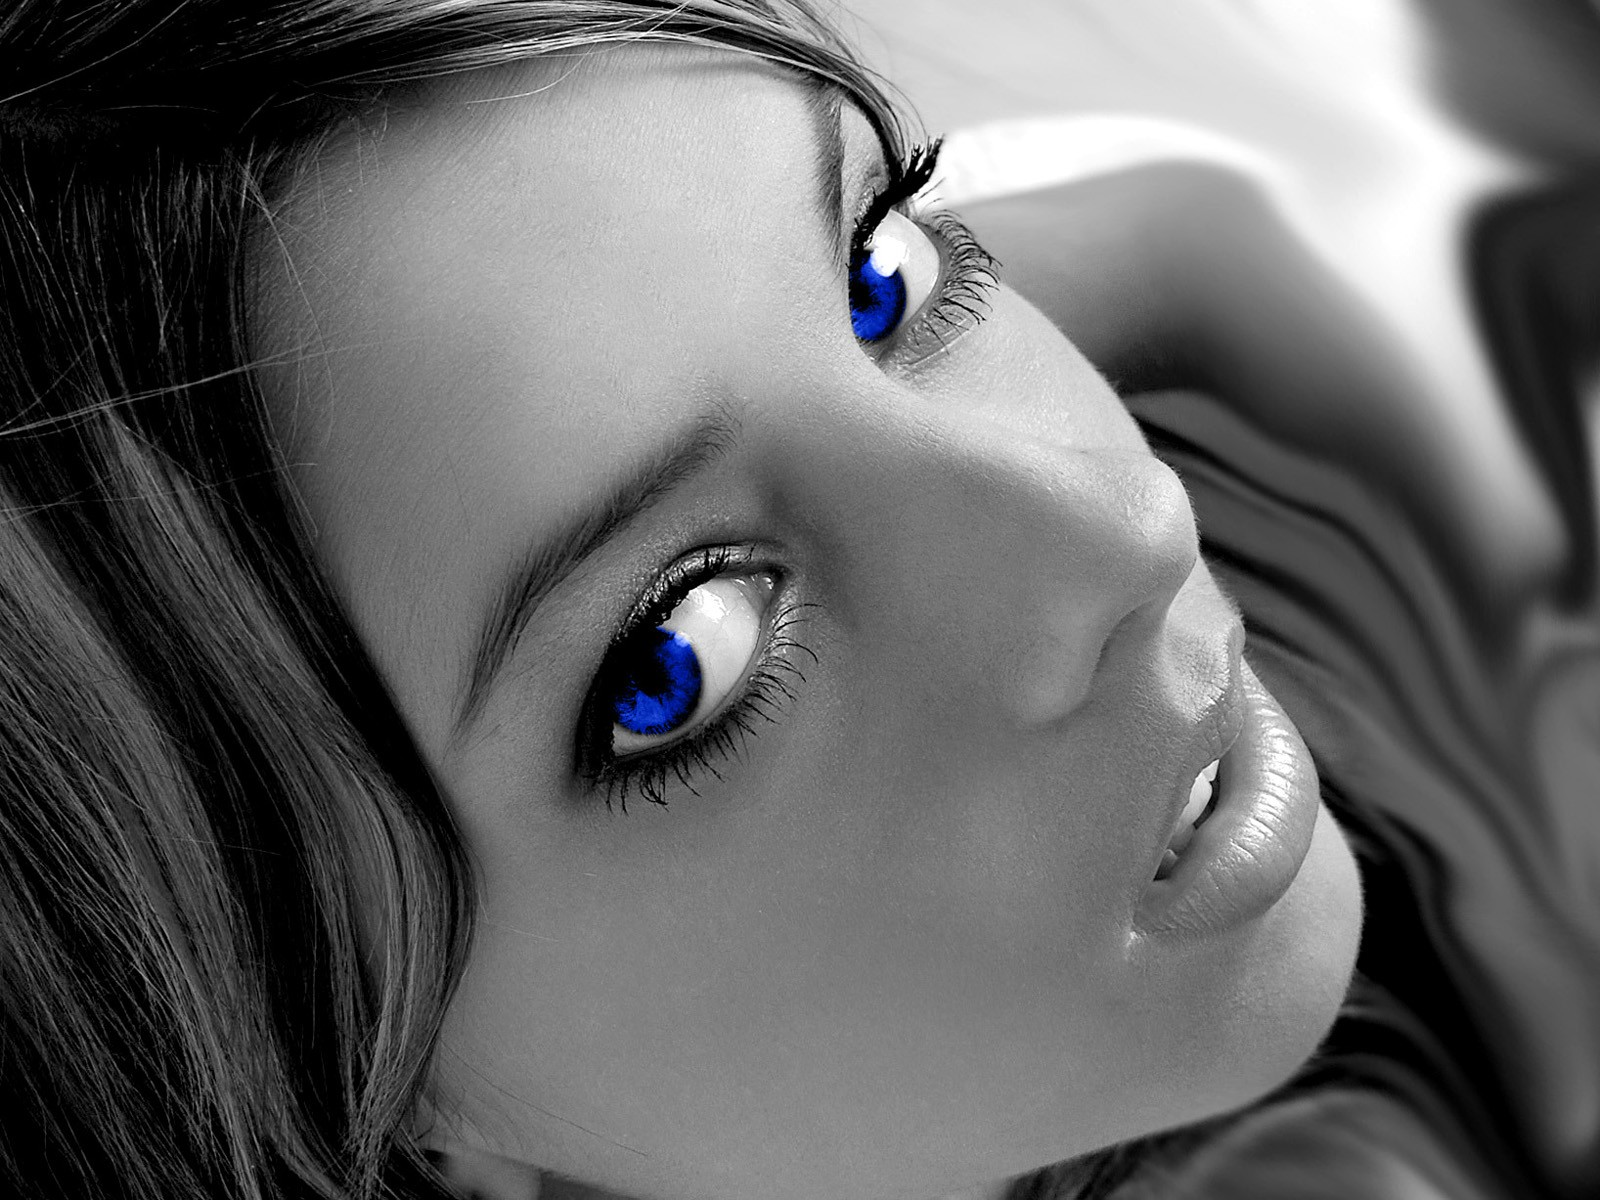 http://4.bp.blogspot.com/-TUSRB_toWh8/Tmam8l-4haI/AAAAAAAAA0s/dM0fguoXd3w/s1600/selective_color_women_blue_eyes_grayscale_beauty_www.Vvallpaper.net.jpg